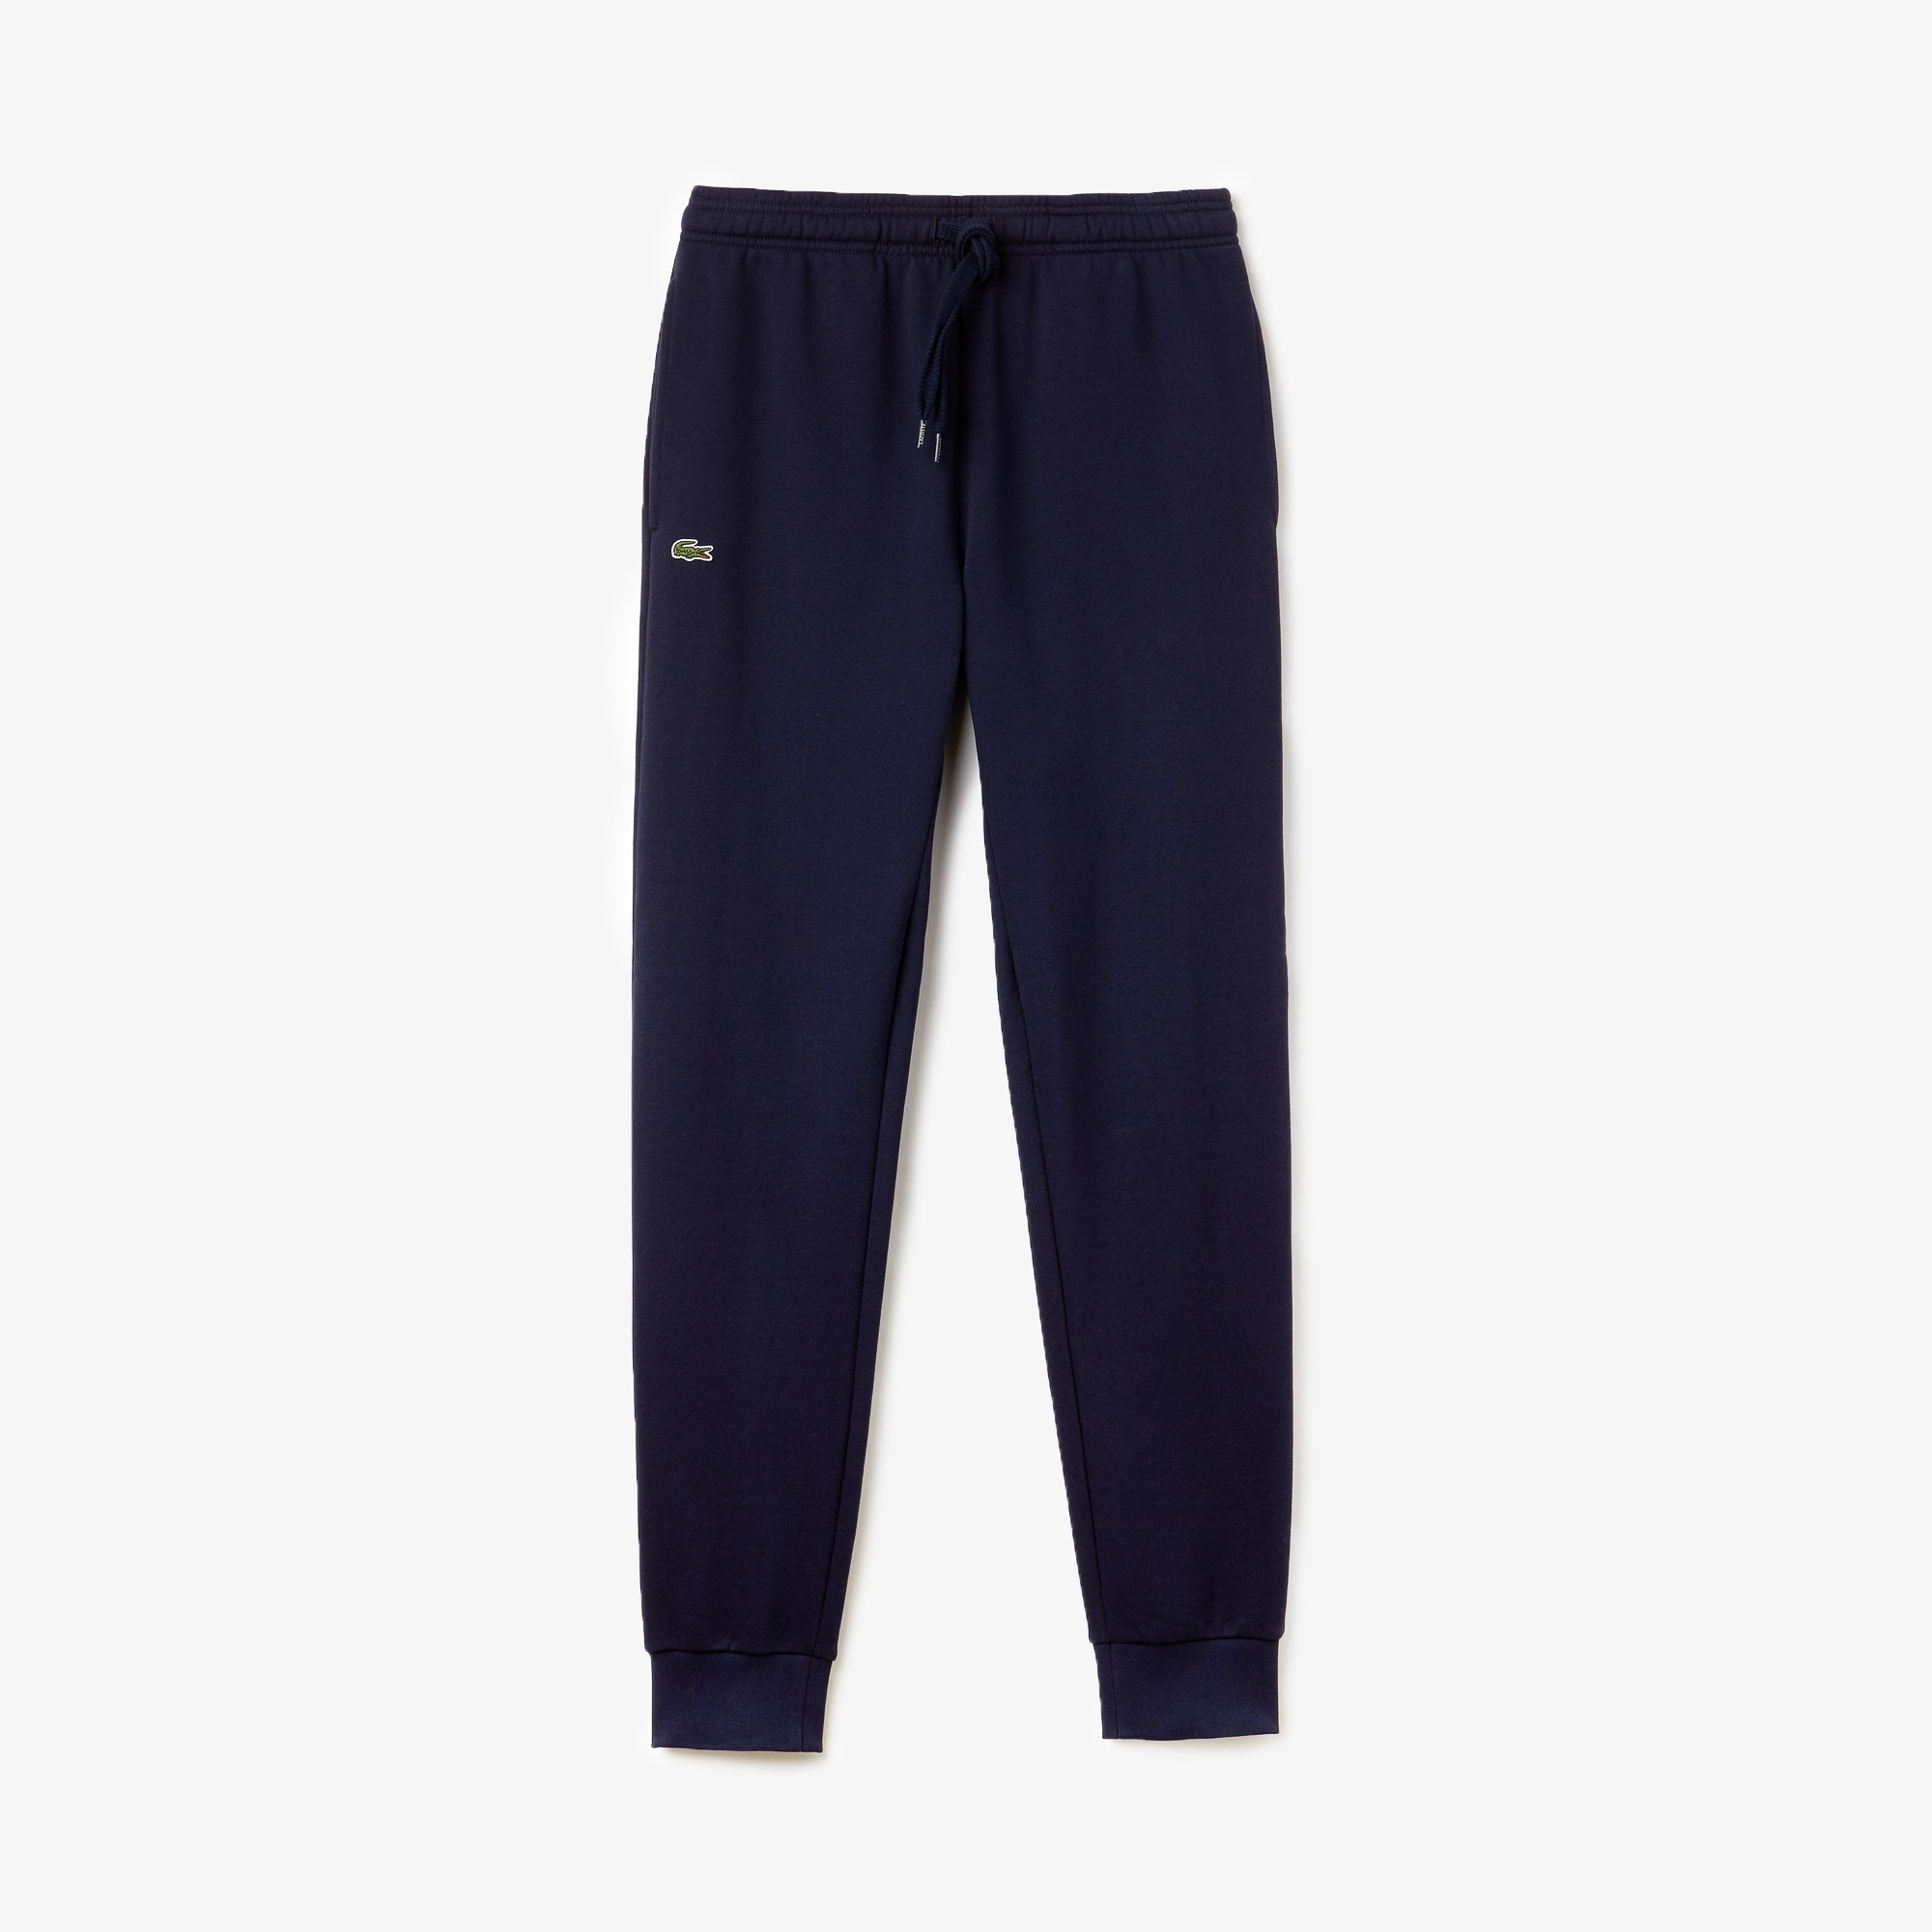 Men's SPORT Cotton Tennis Sweatpants